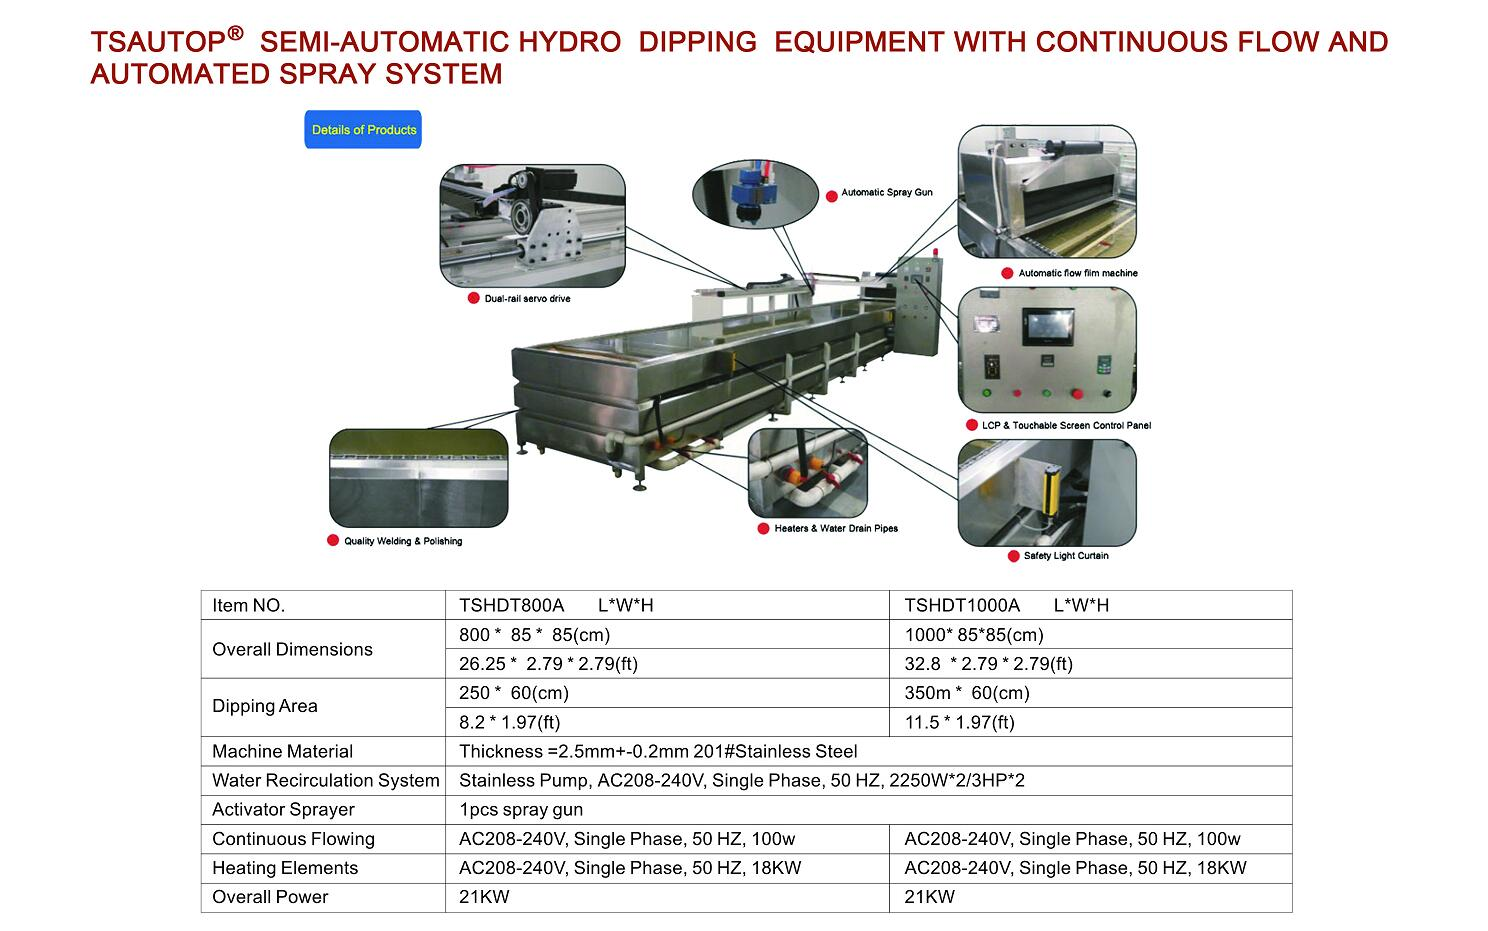 semi-automatic hydro dipping equipment